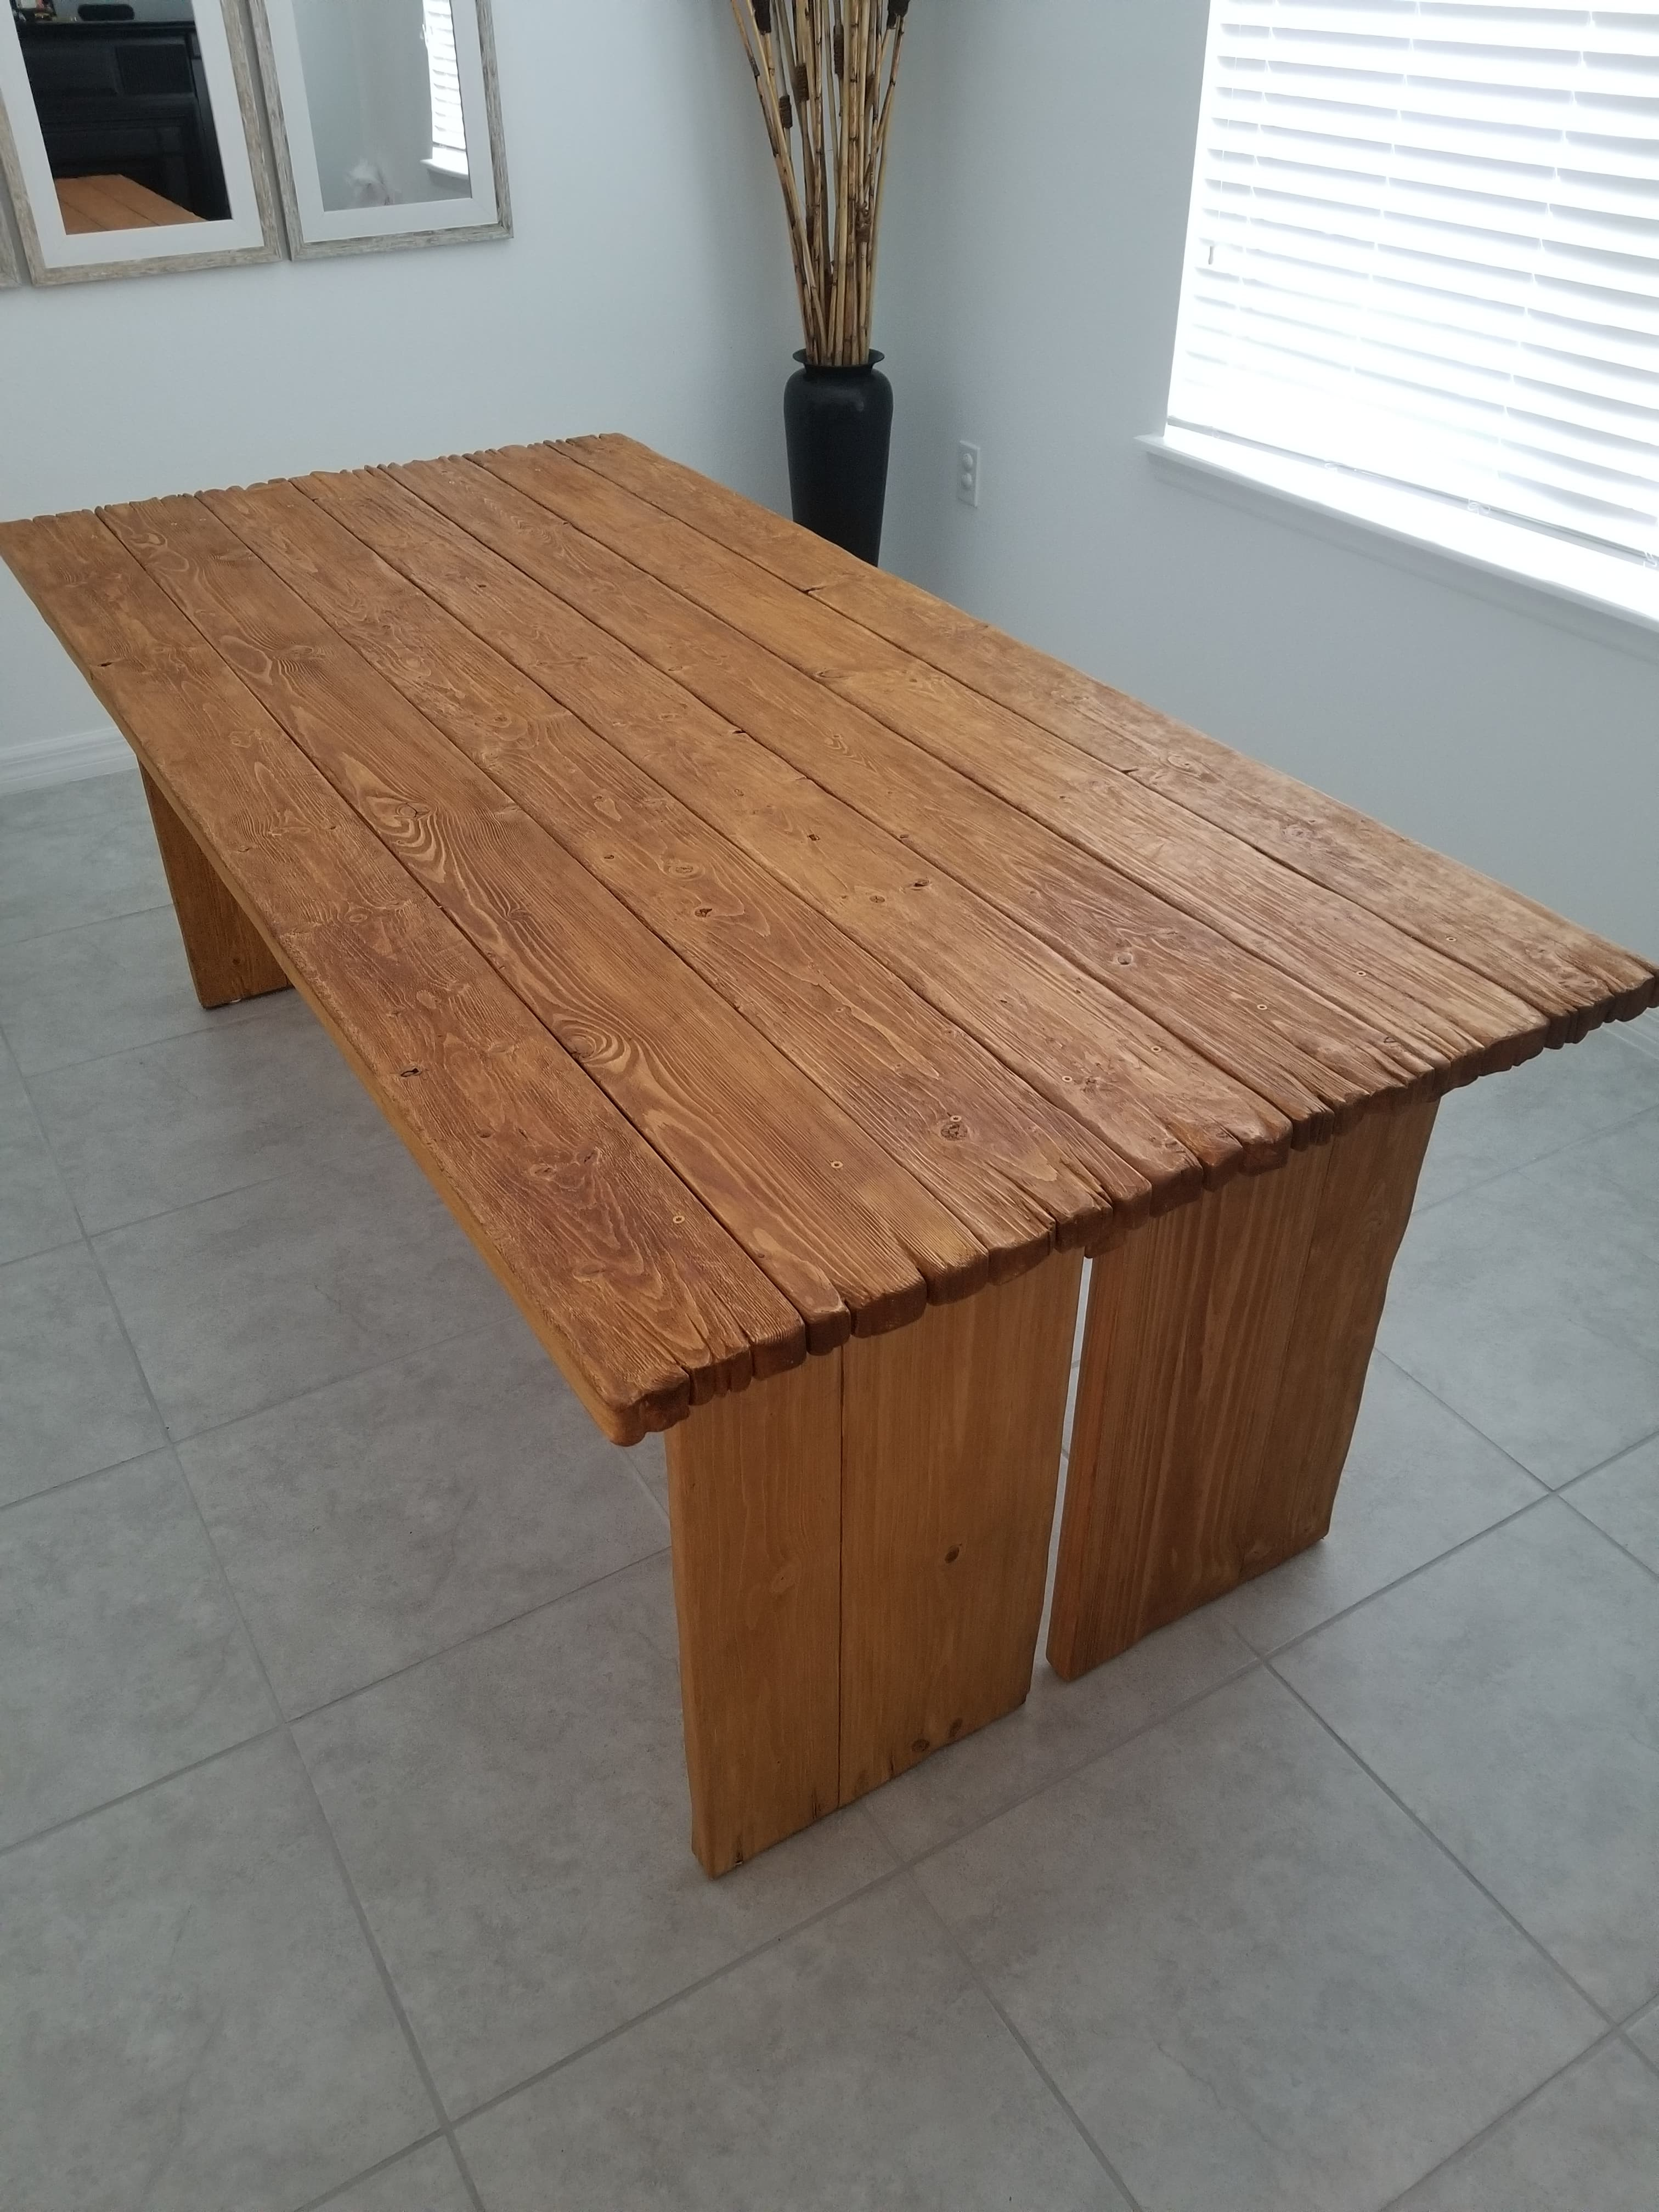 Farmhouse Rustic Dining Table